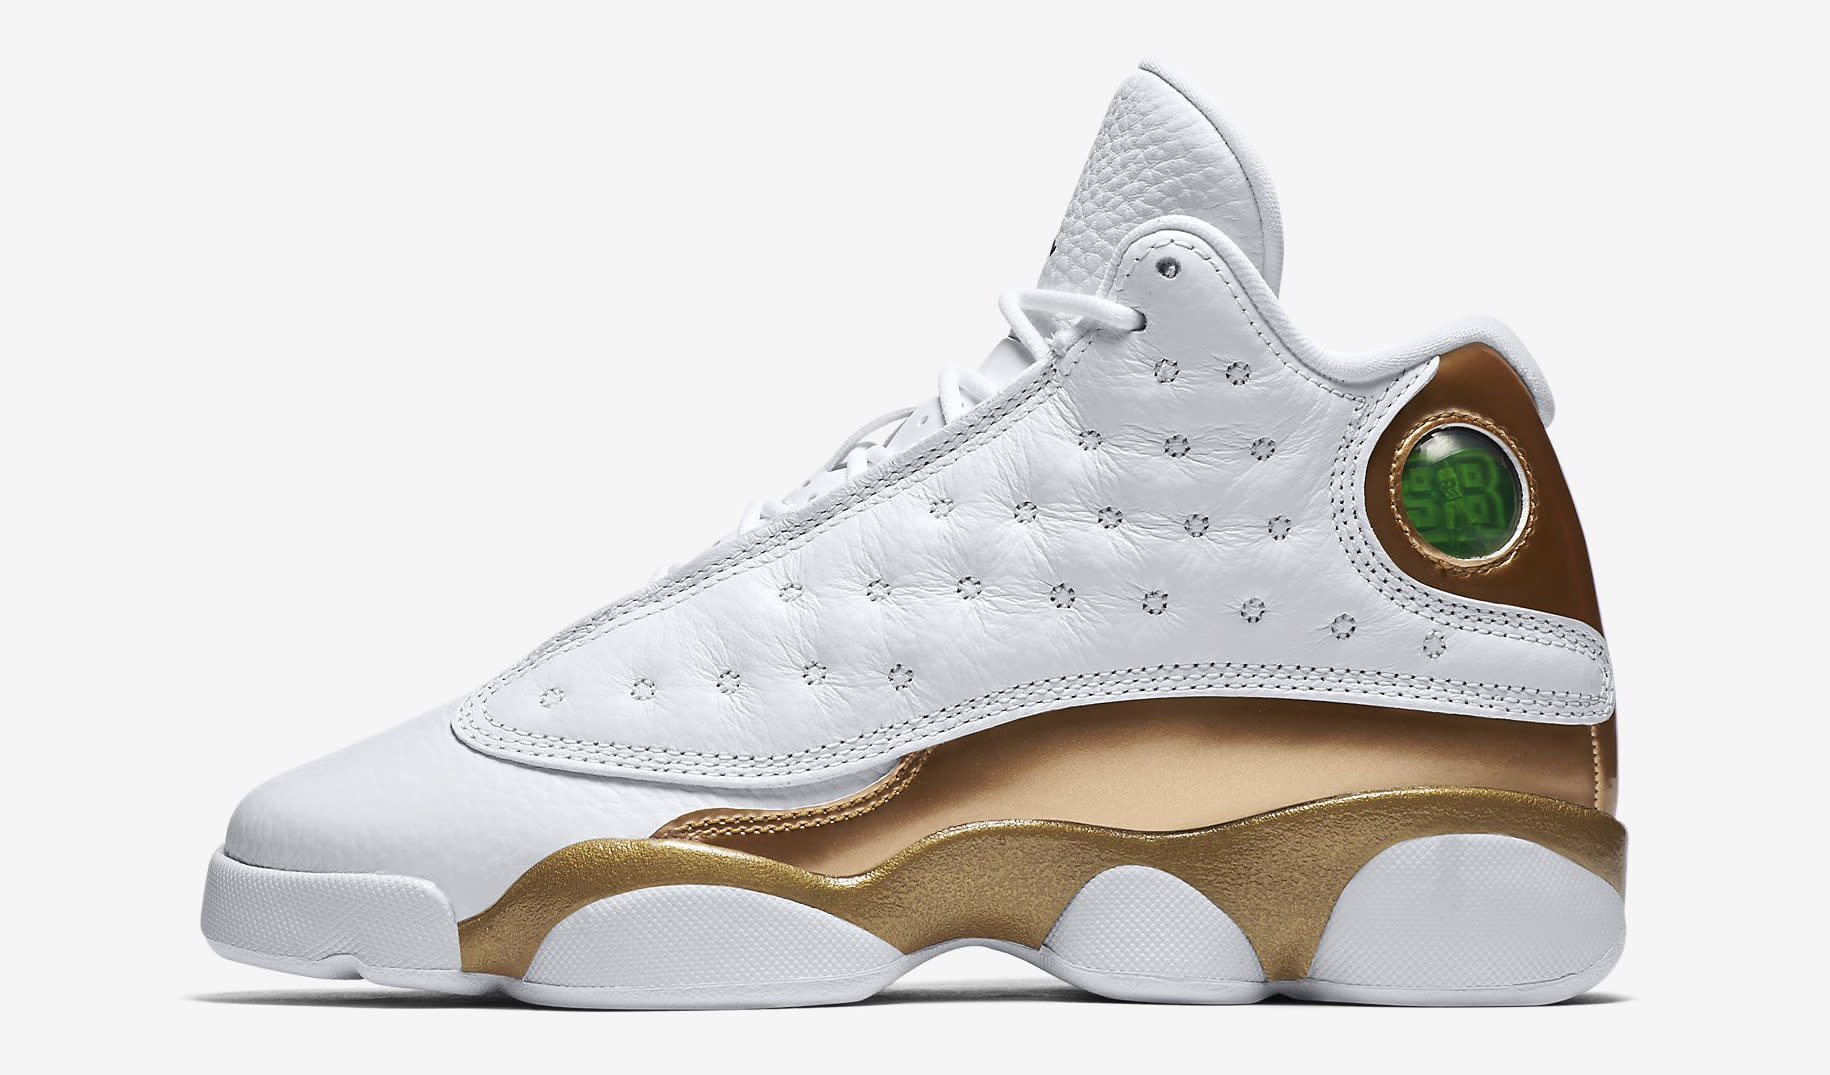 DMP Air Jordan 13 897561-900 Profile